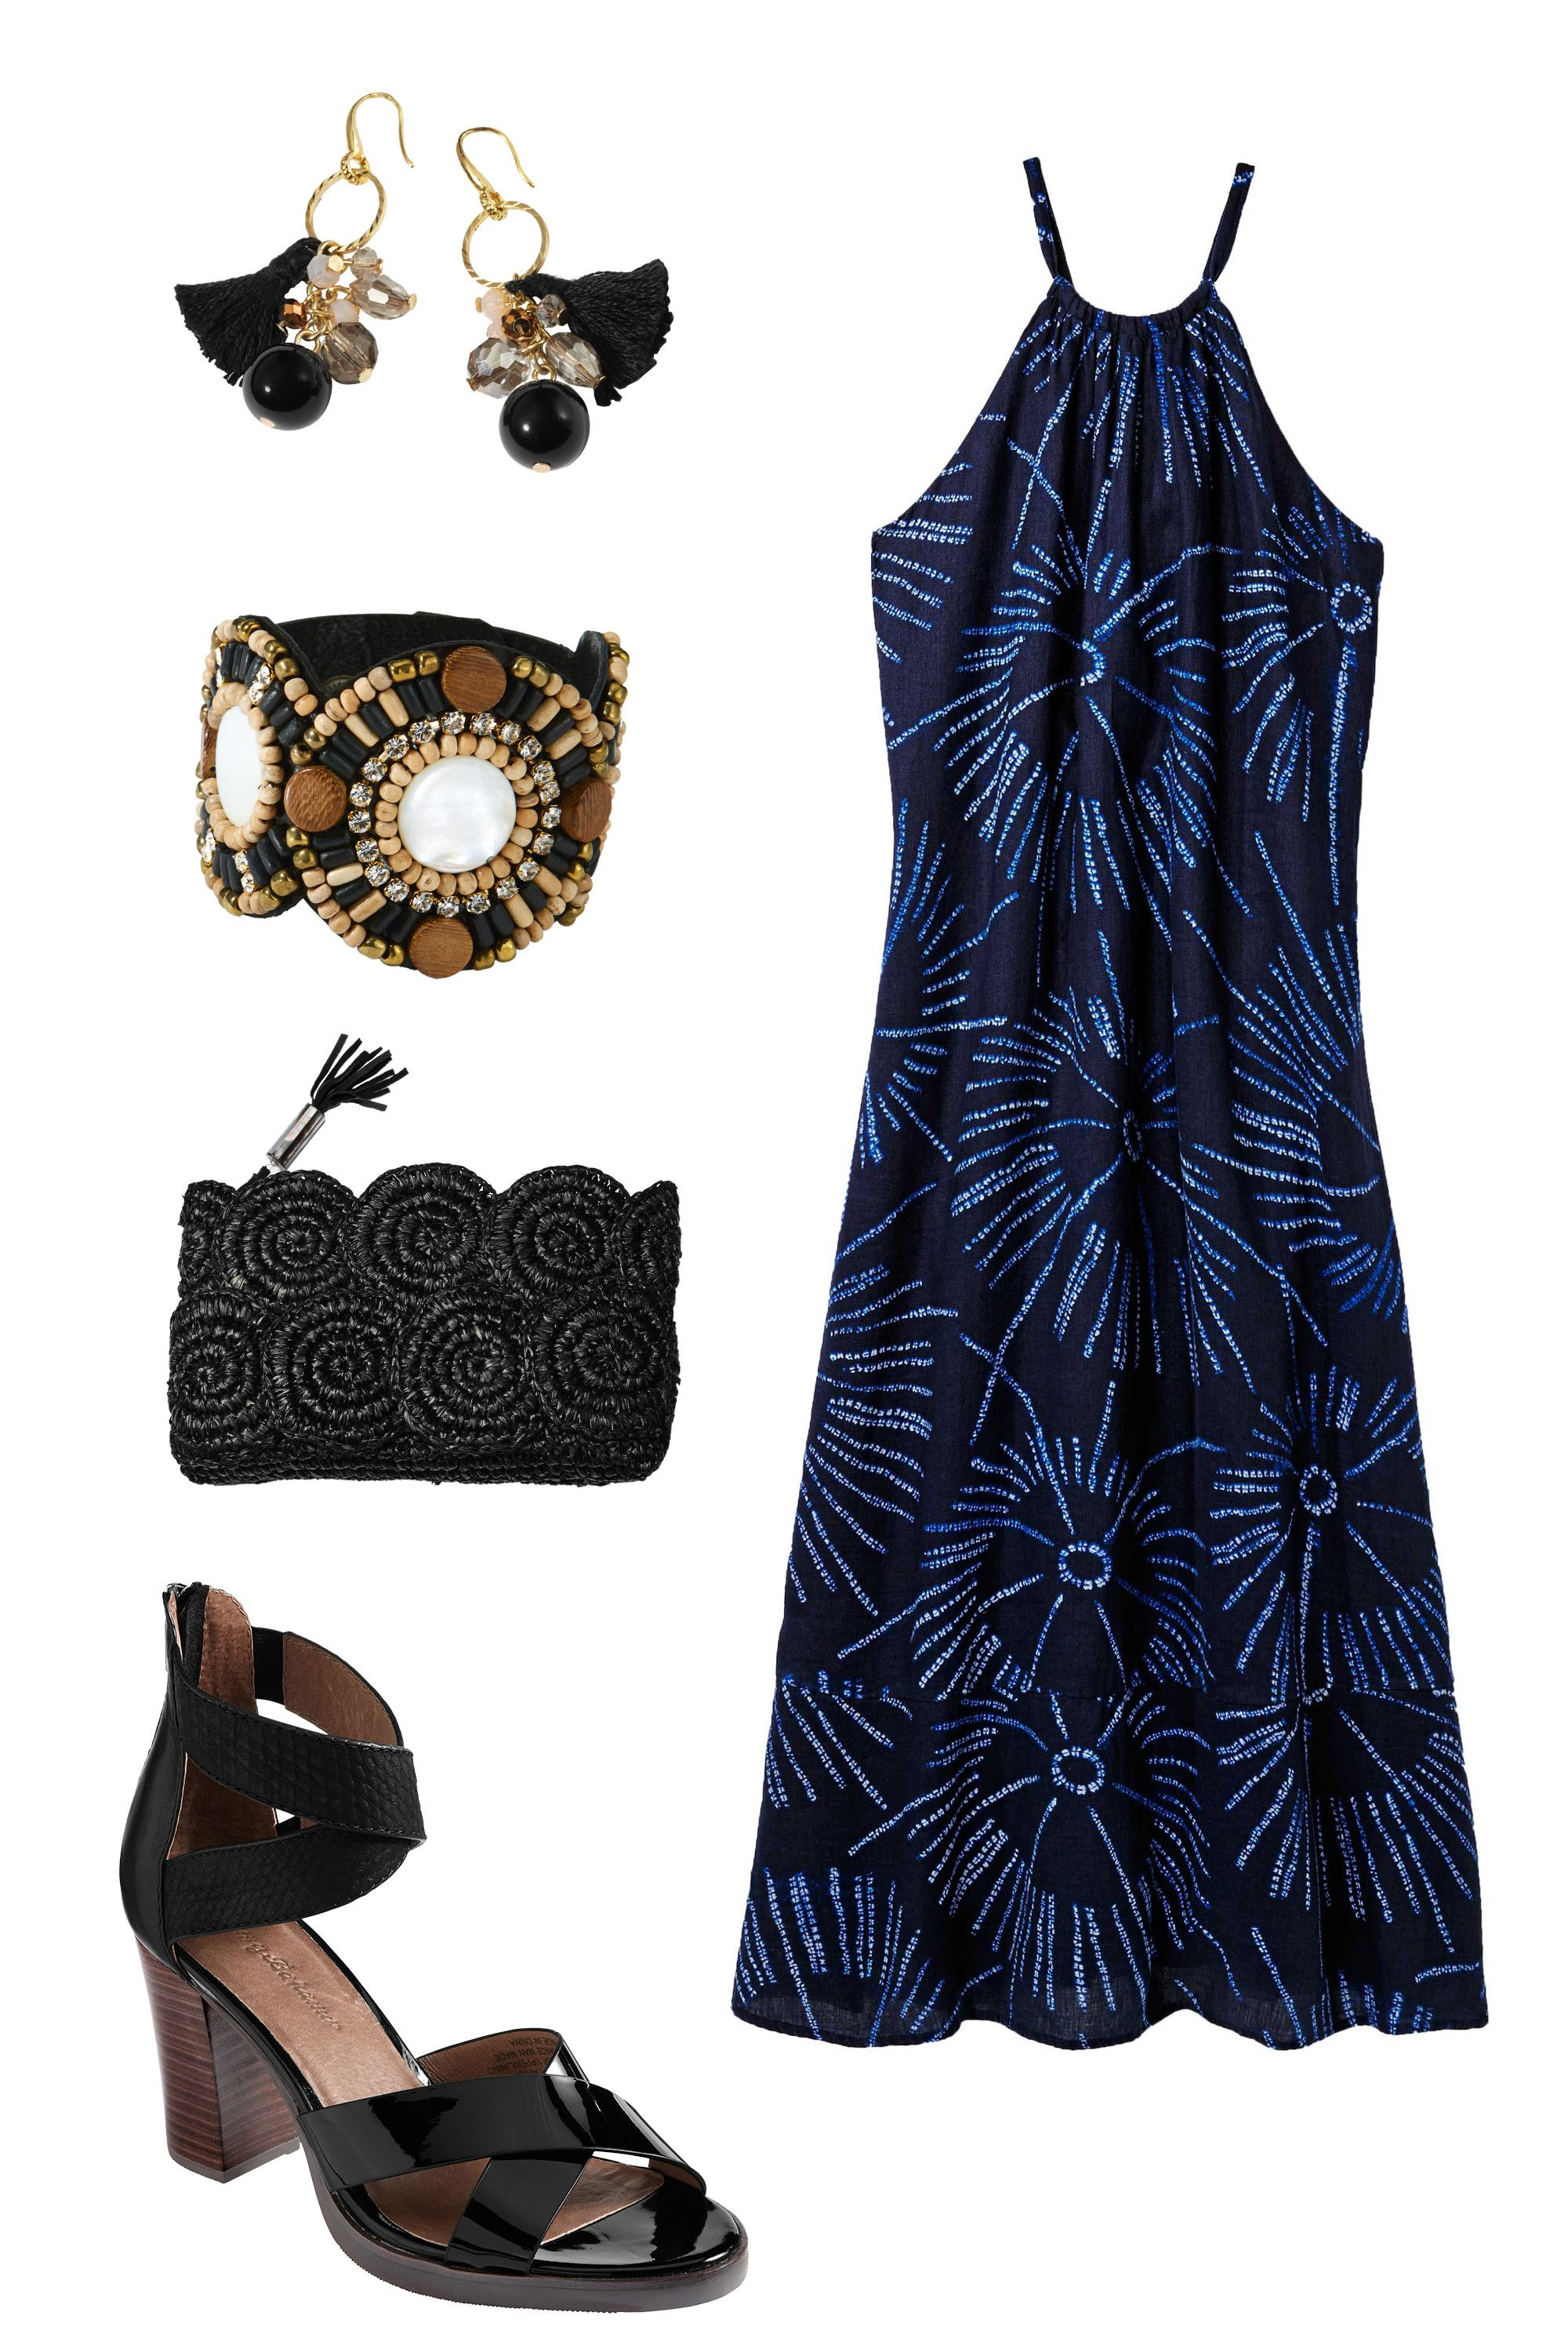 """<p>An evening spent enjoying cocktails on the roof calls for a flirty dress paired with chunky, wearable heels (in case you can't get a seat at the bar).<br></p><p><br> </p><p><em></em><em>Tommy Bahama South of France Earrings, <a href=""""http://www.tommybahama.com/en/South-of-France-Earrings/p/THW715568-023"""" target=""""_blank"""">$48</a>; Bastille Bursts Linen Halter Dress <a href=""""http://www.tommybahama.com/en/Bastille-Bursts-Linen-Halter-Dress/p/TW613570-5478"""" target=""""_blank"""">$158</a>; Lavina Leather Sandals, <a href=""""http://www.tommybahama.com/en/c/en/Lavina-Leather-Sandals/p/TFW00235-023"""" target=""""_blank"""">$148</a>; Rio Clutch, <a href=""""http://www.tommybahama.com/en/Rio-Clutch/p/THW745116-023"""" target=""""_blank"""">$138</a>; Akiko Cuff, <a href=""""http://www.tommybahama.com/en/Akiko-Cuff/p/THW74168-023"""" target=""""_blank"""">$128</a></em><br></p>"""